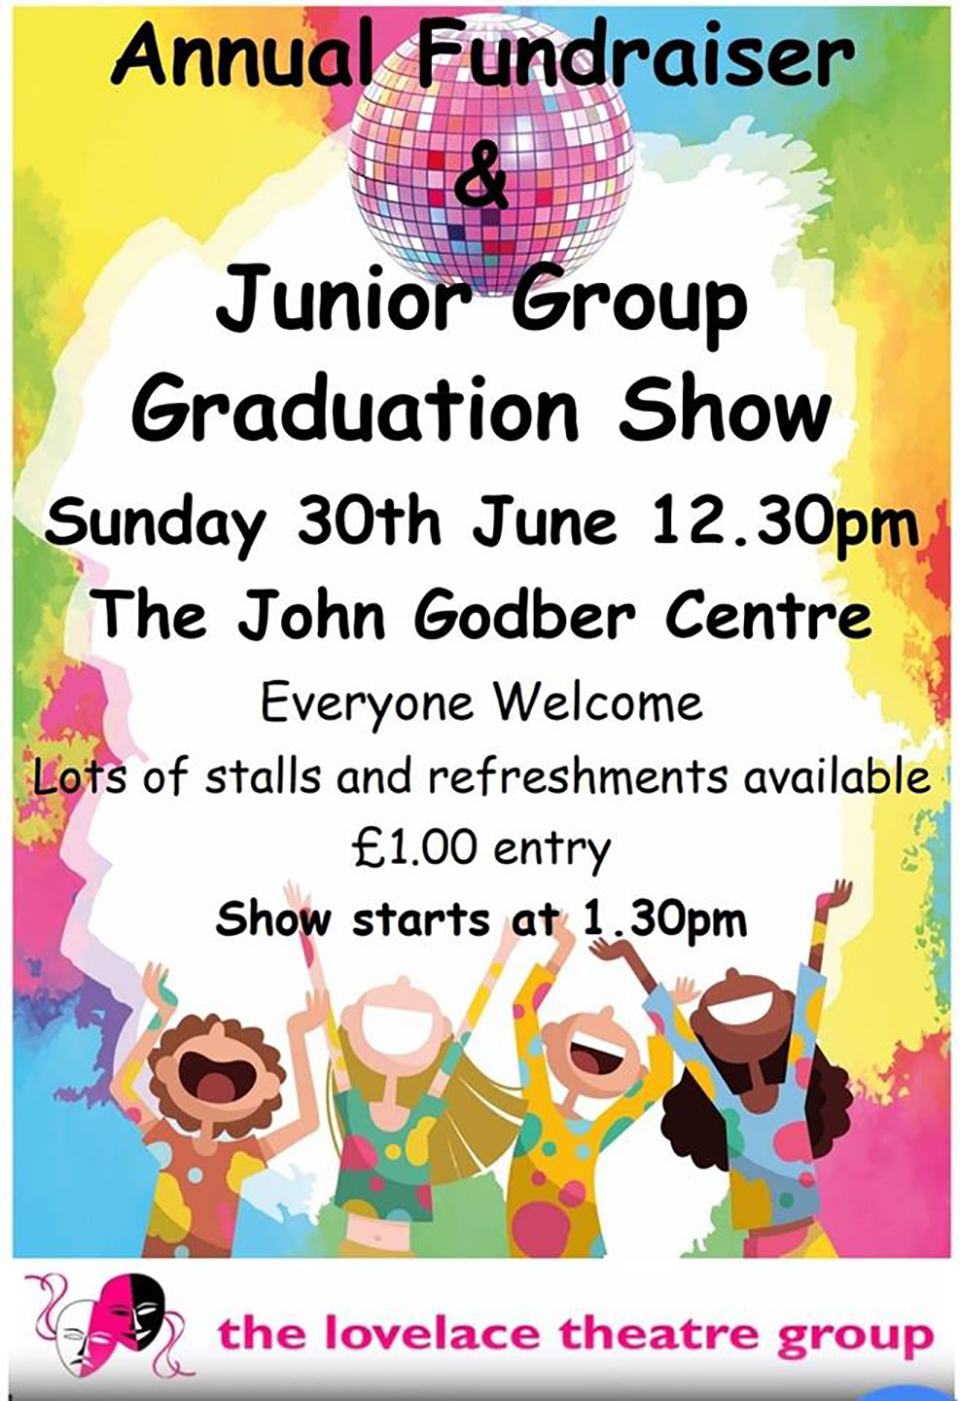 Lovelace Theatre Group Junior Group Graduation Show poster 2019